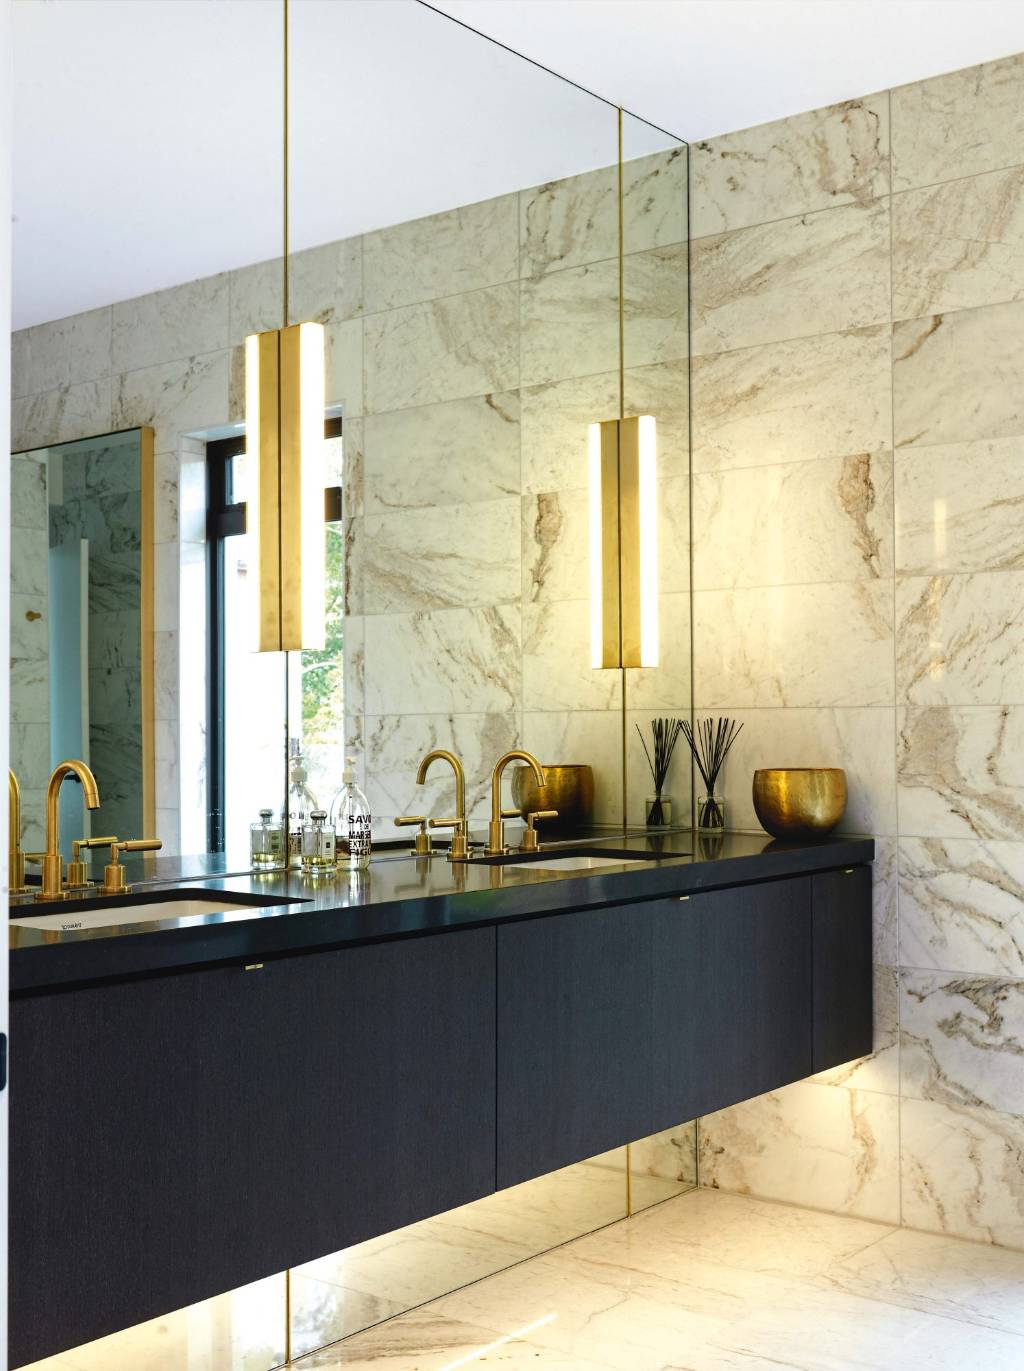 15 Mirrors That Satisfy More Than Vanity Stuff Co Nz